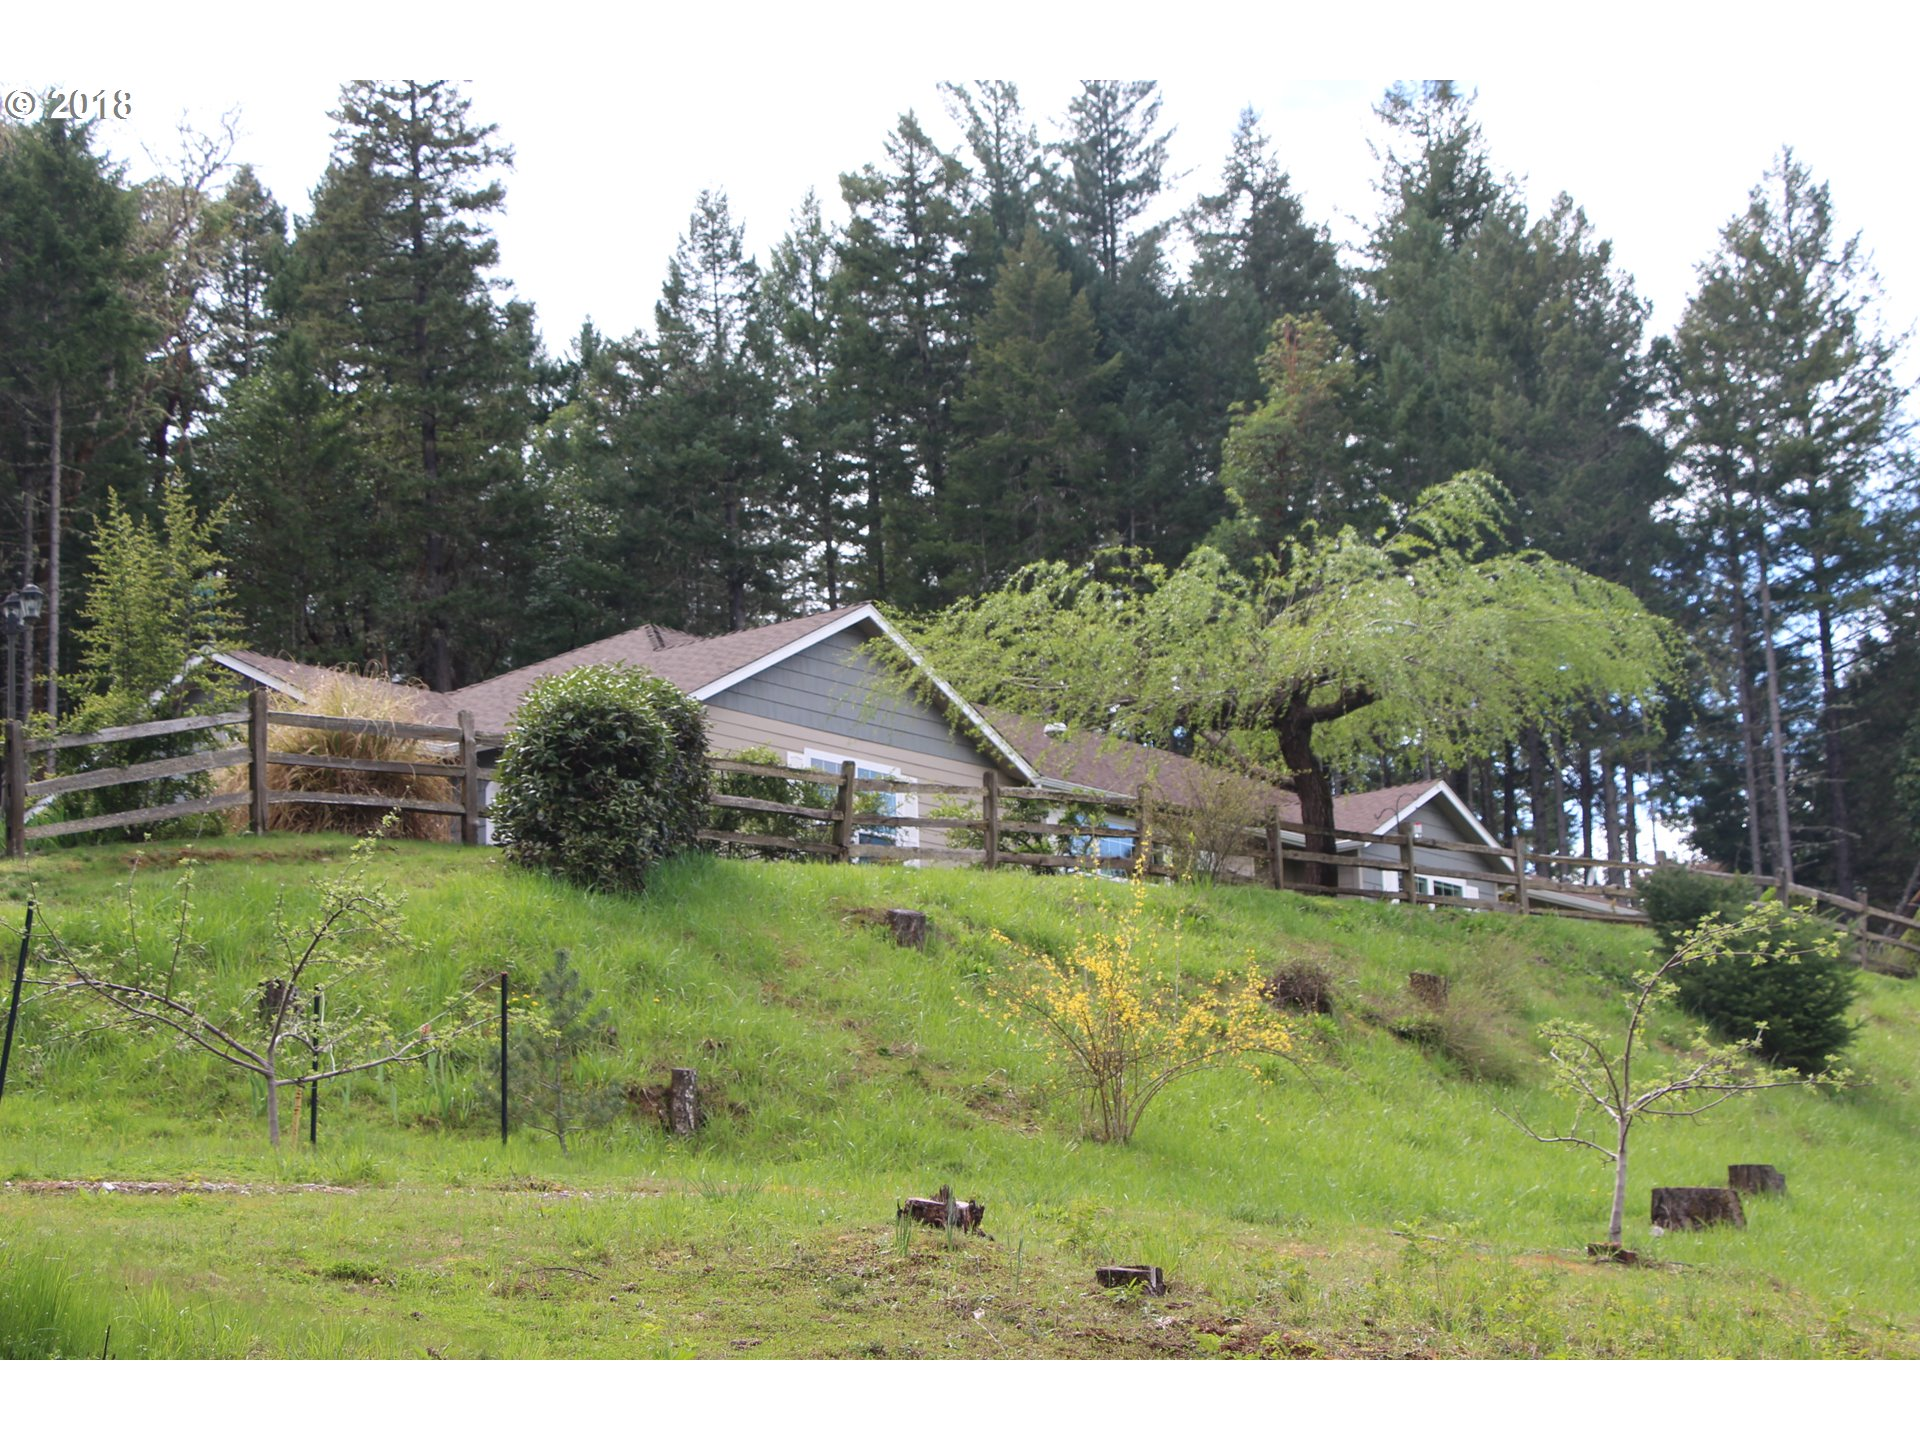 Sunny Valley, OR 3 Bedroom Home For Sale